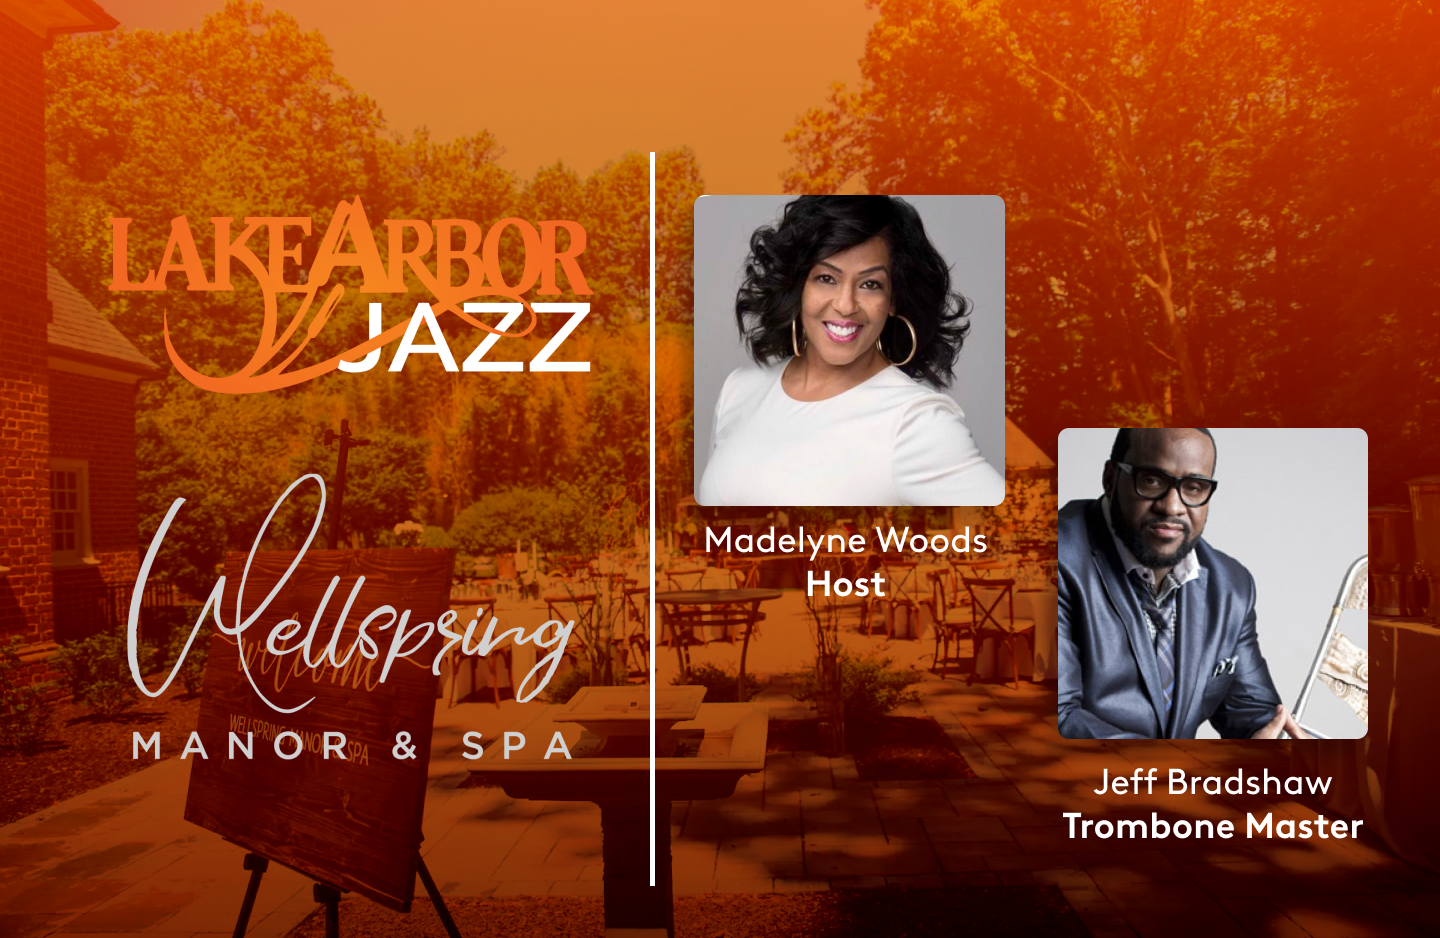 Lake Arbor Jazz: Safe Summer Sounds from Wellspring Manor & Spa (1)